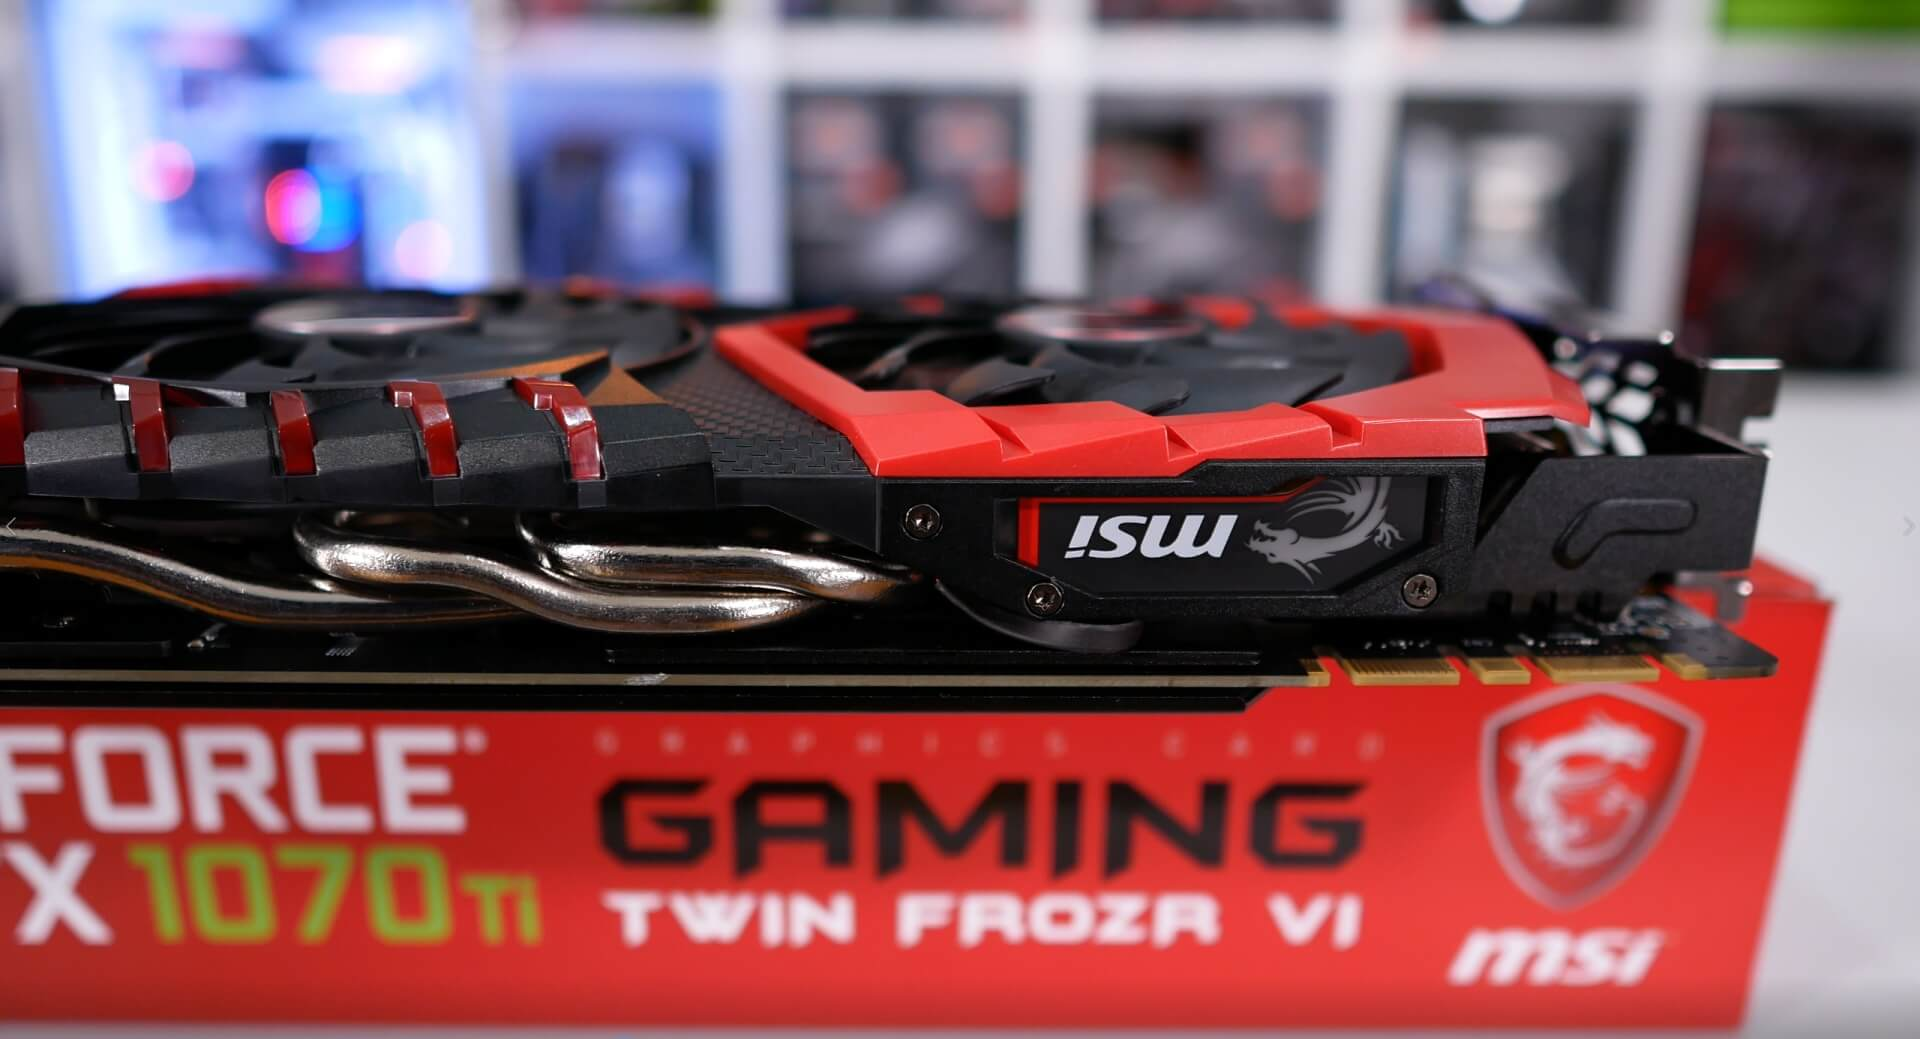 MSI GeForce GTX 1070 Ti Gaming Review Photo Gallery - TechSpot